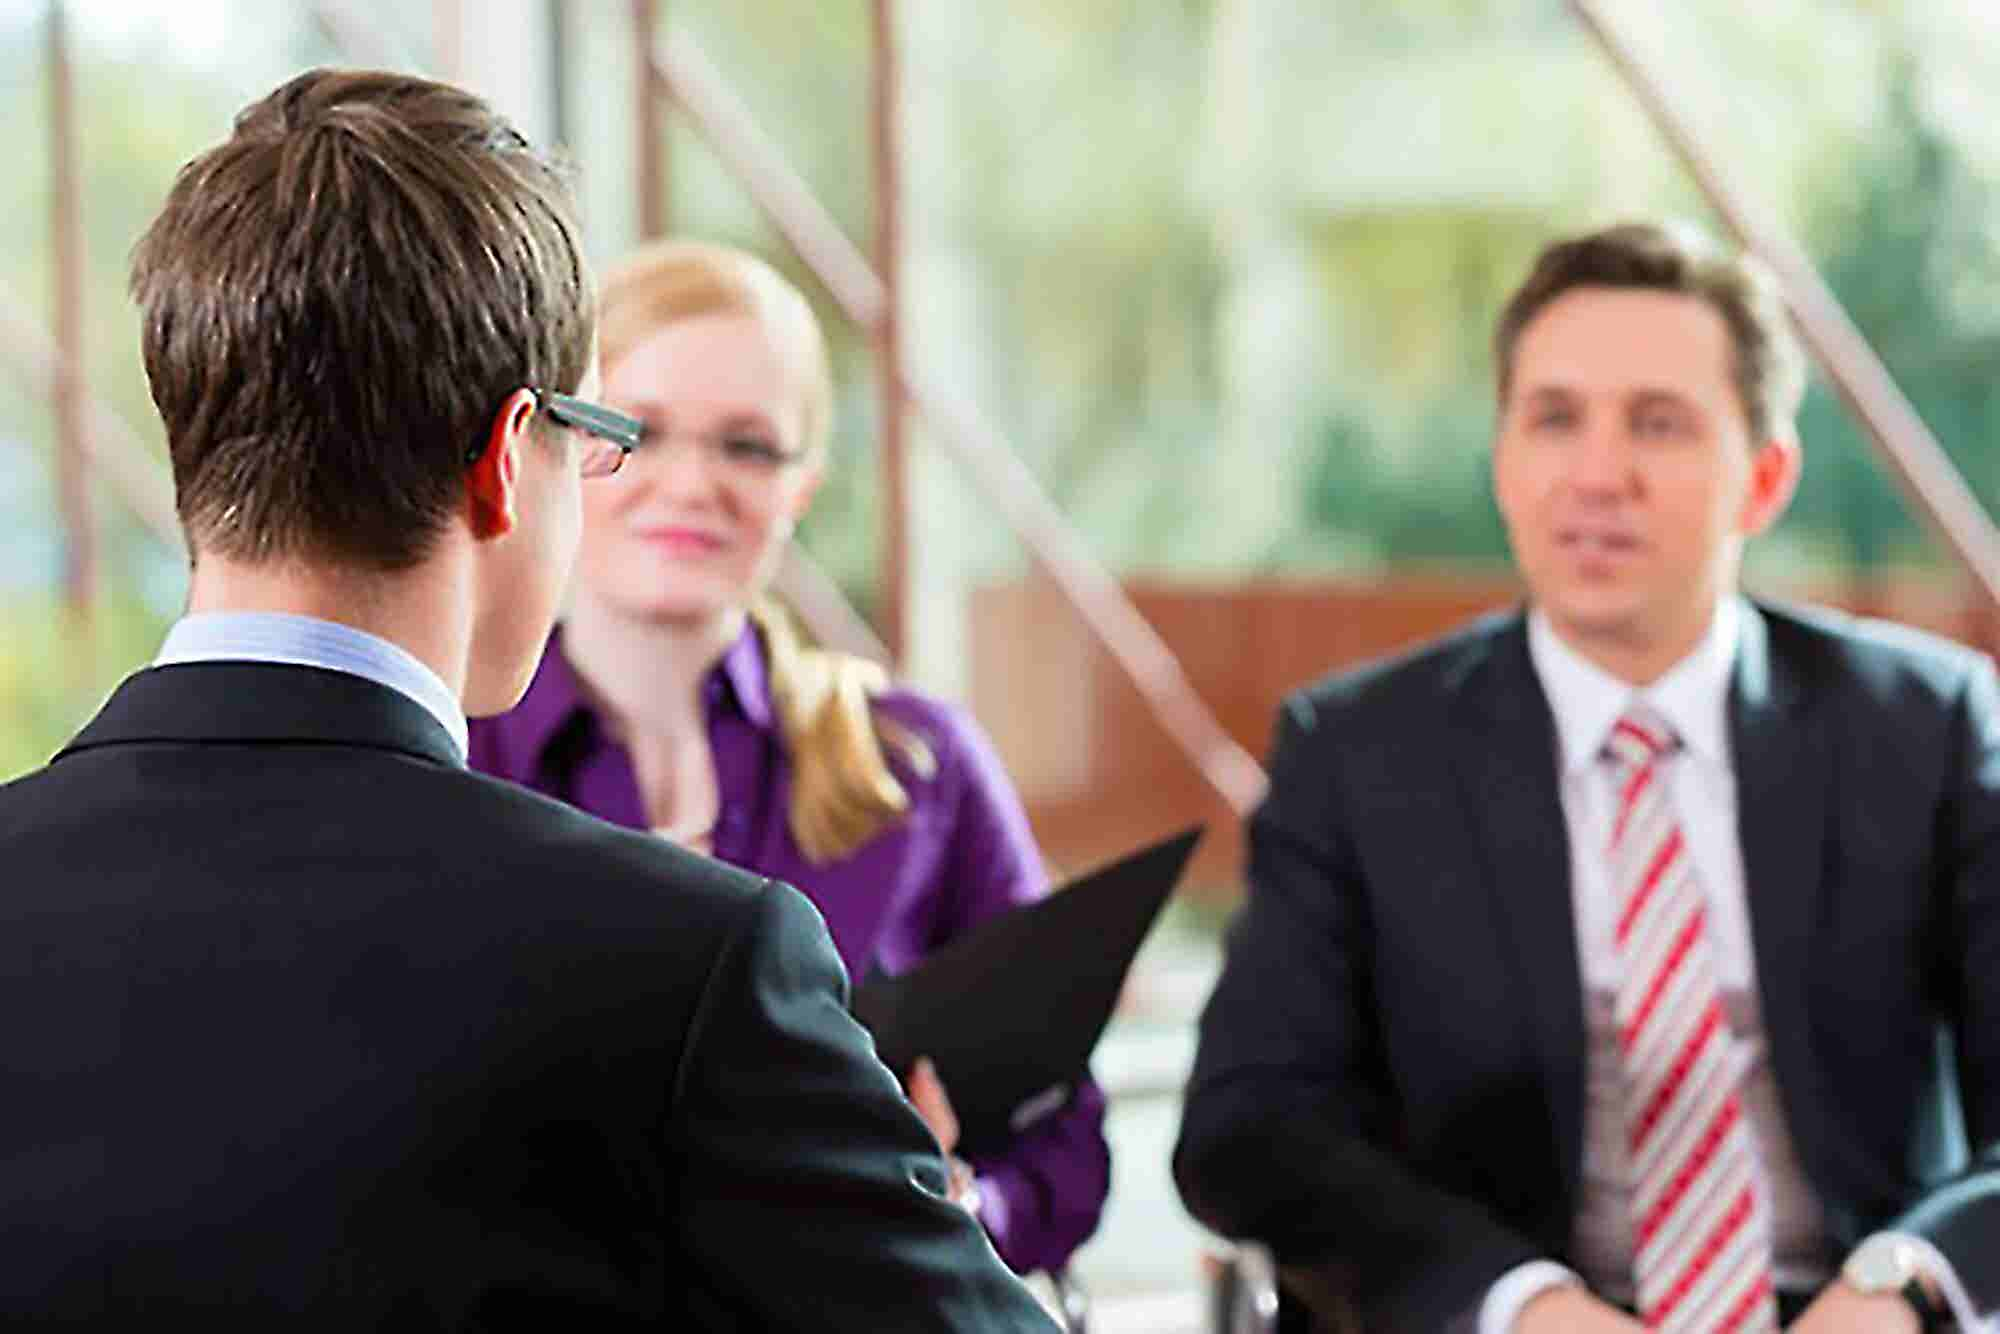 You Won't Find What Makes a Hire 'Special' on Their Resume